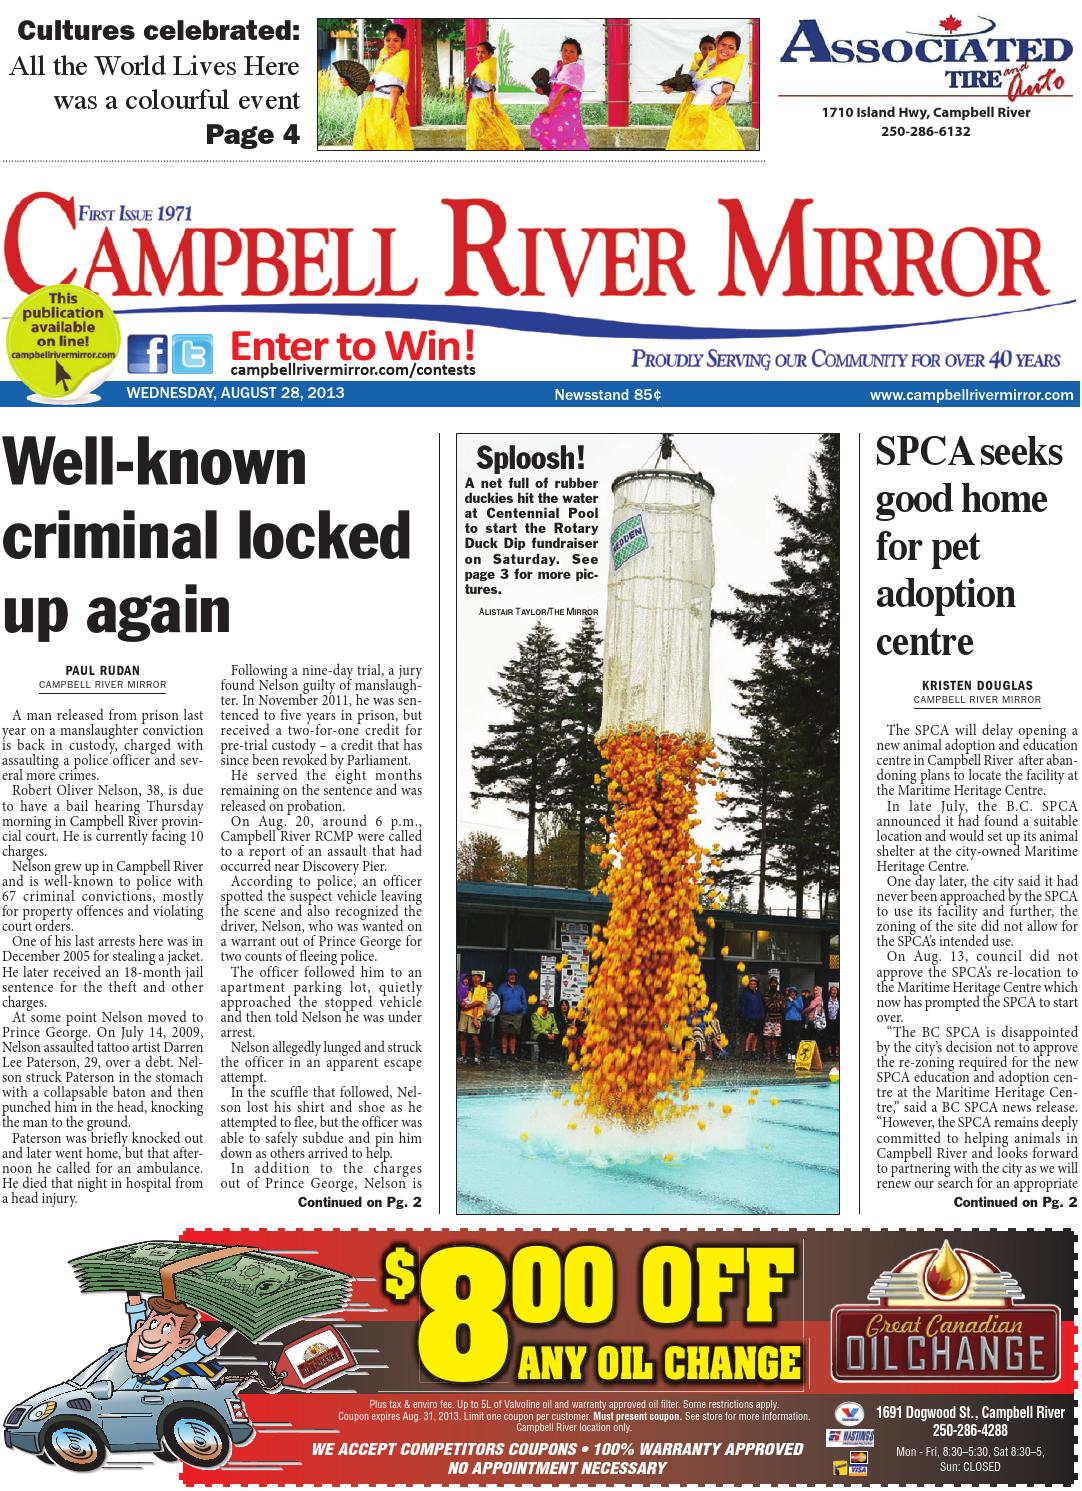 Campbell River Mirror August 28 2013 By Black Press Media